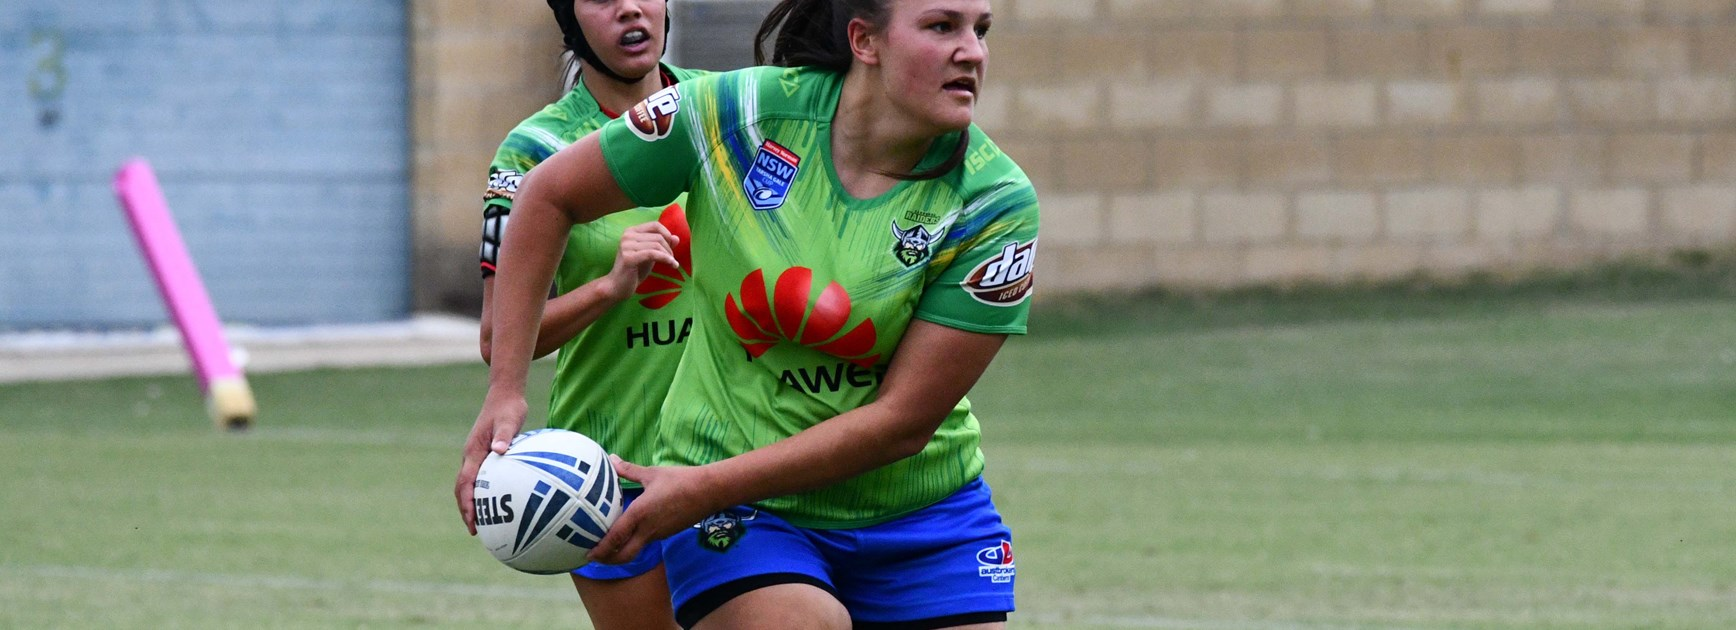 Raiders Developing Female Pathways